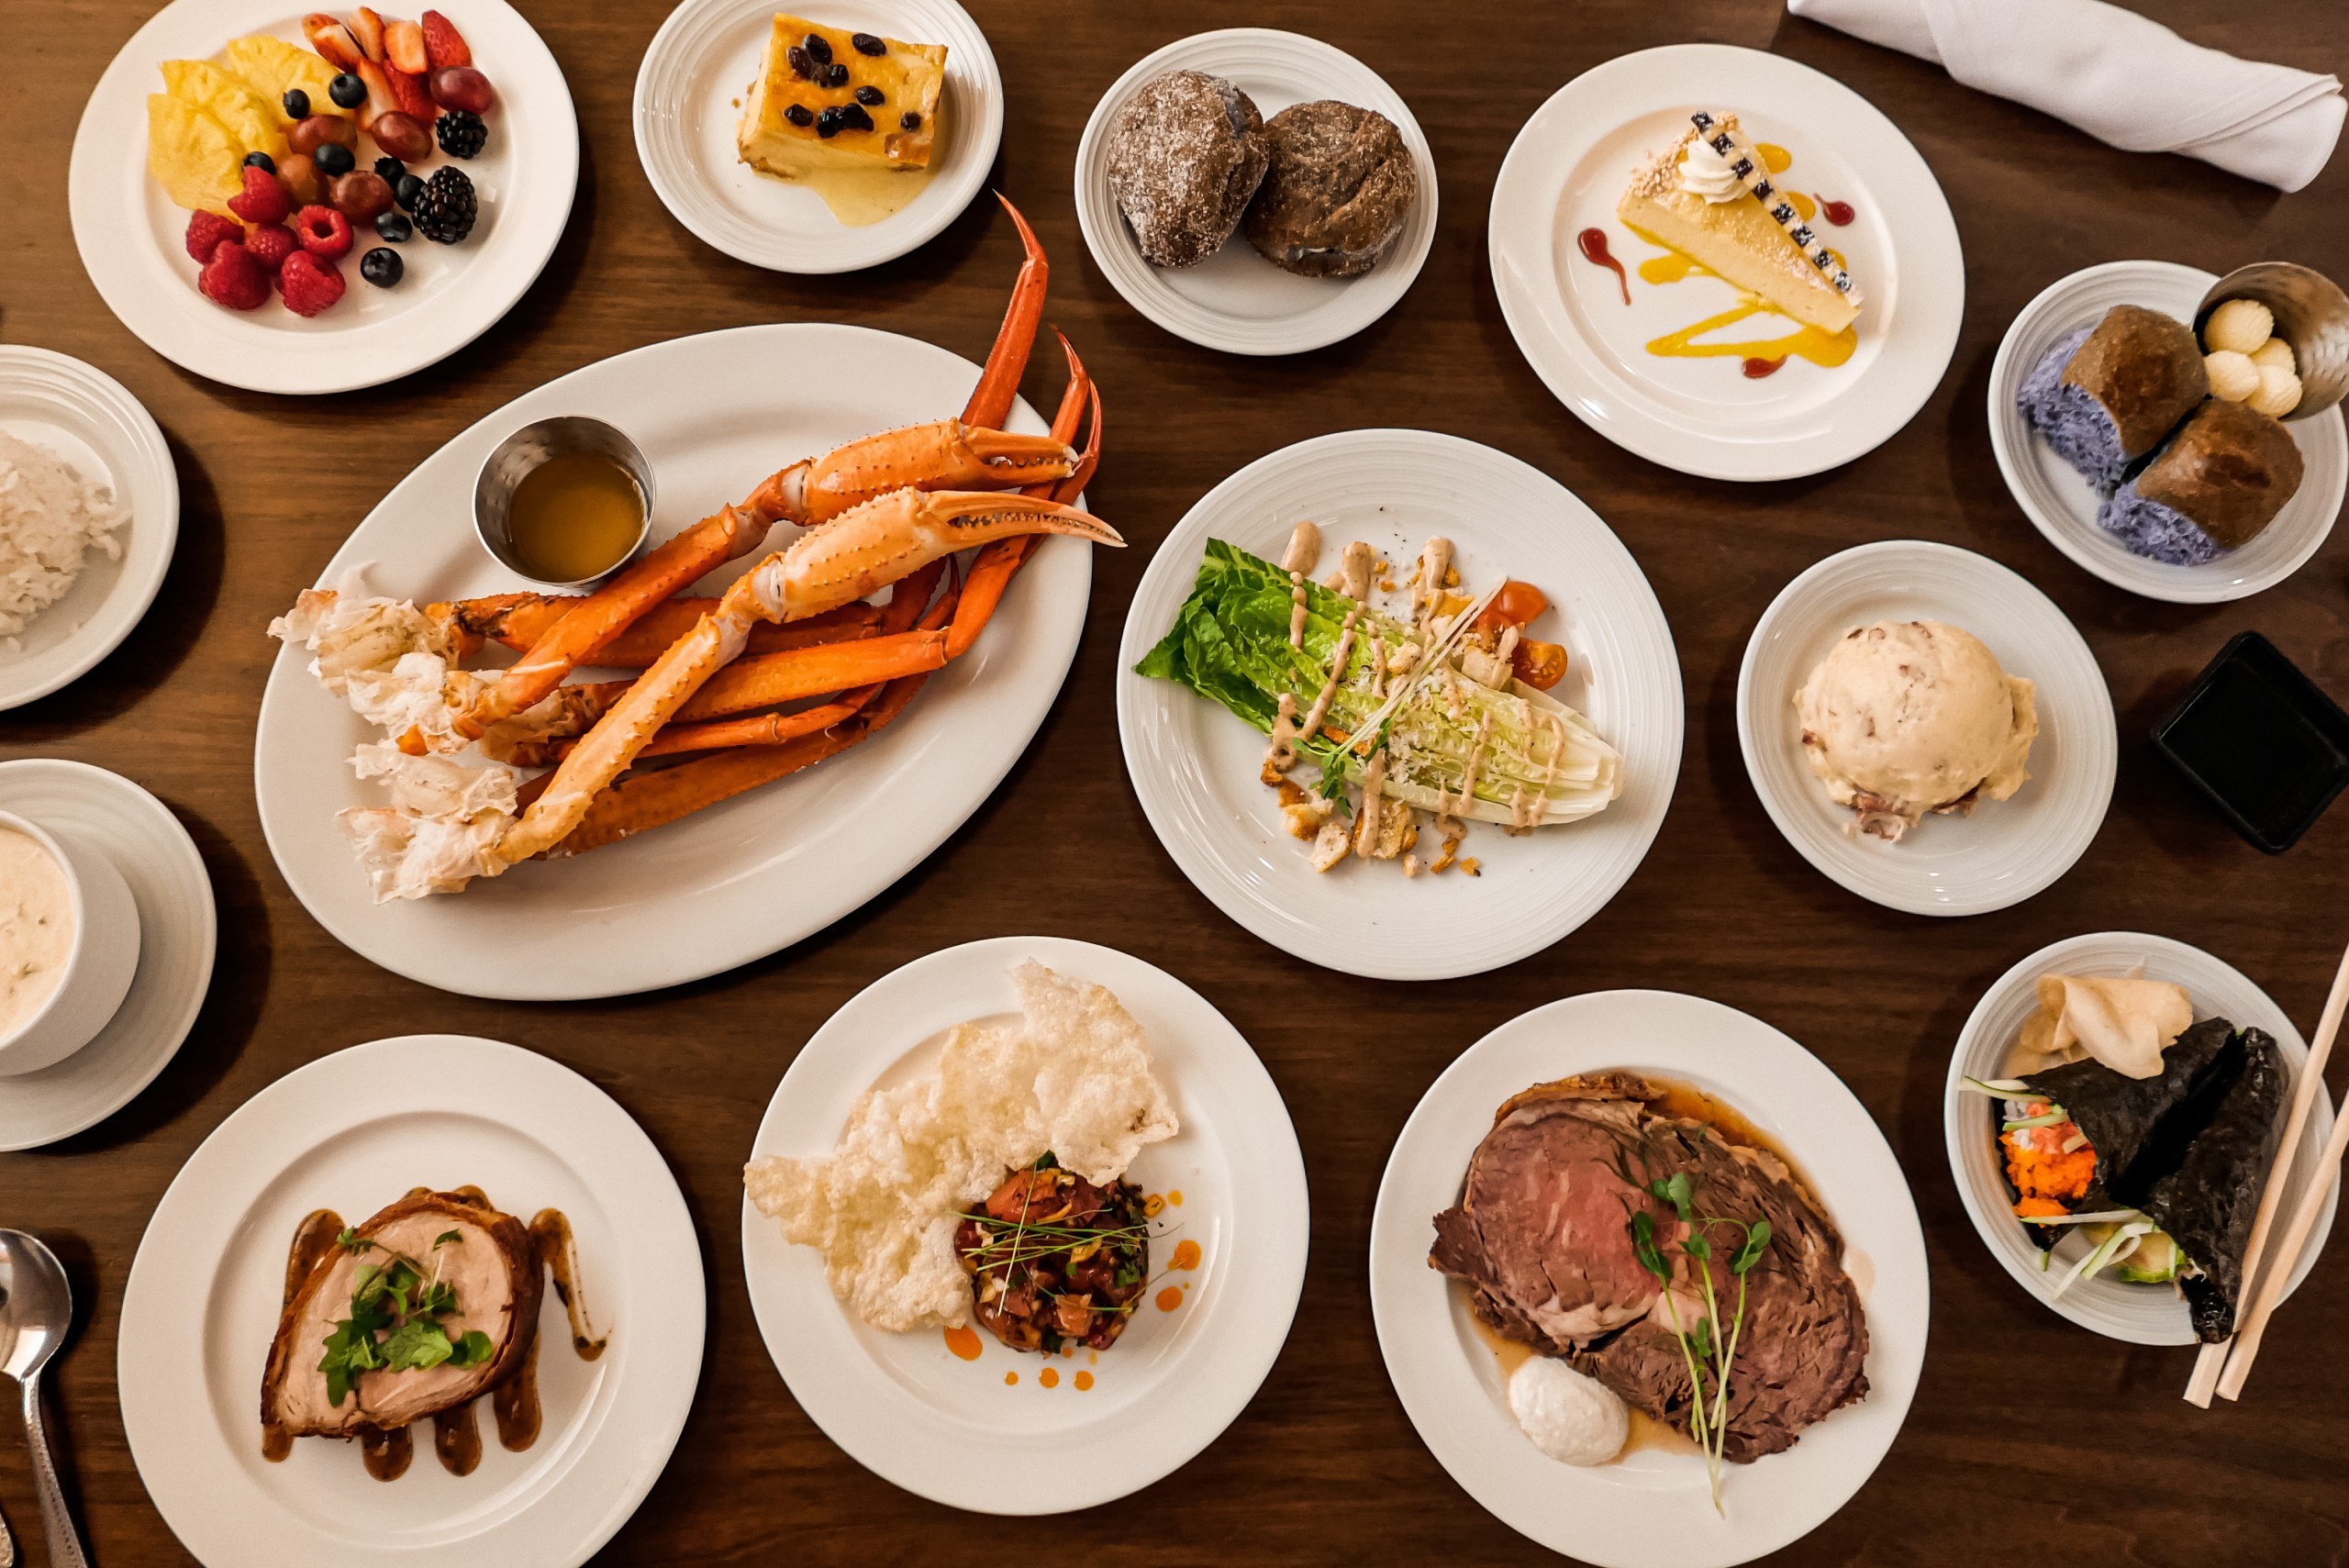 Eat to your Heart's Content at the Prince Waikīkī's Upscale Buffet Experience - Hawaii Magazine